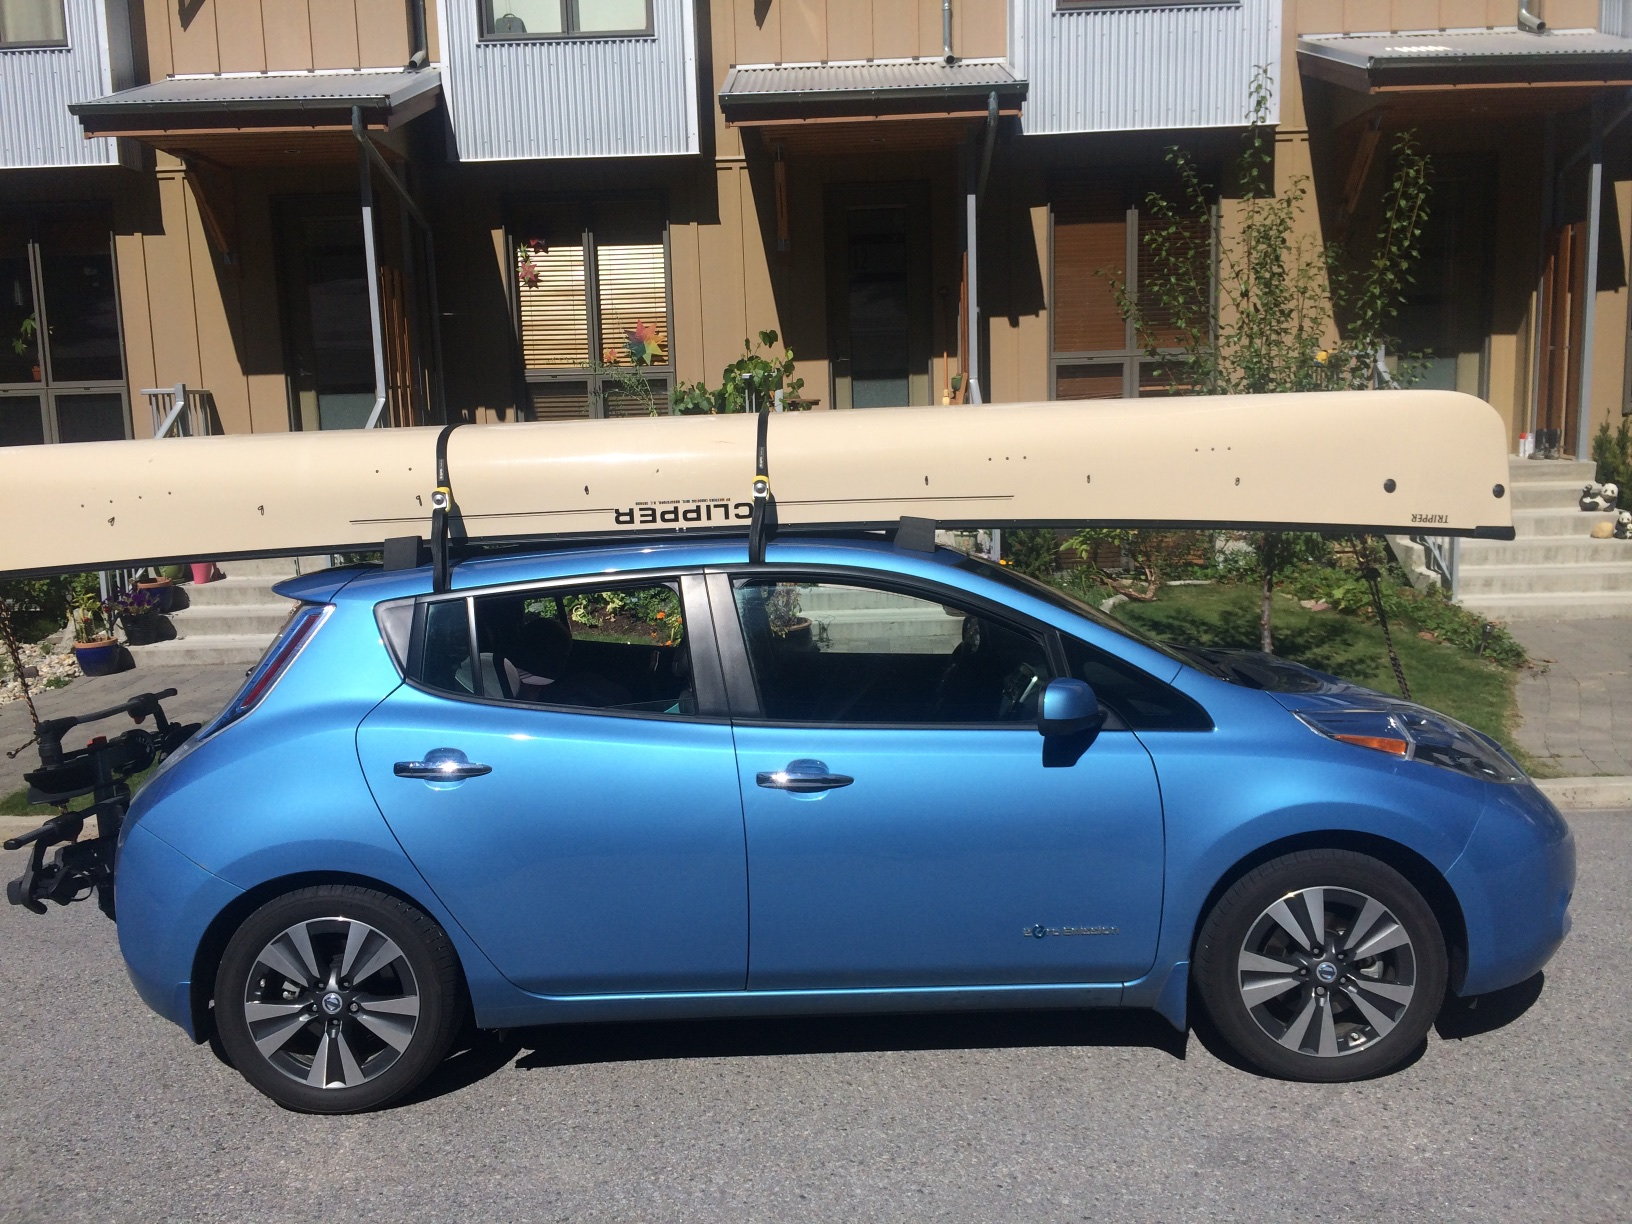 The canoe on the roof and all our gear inside